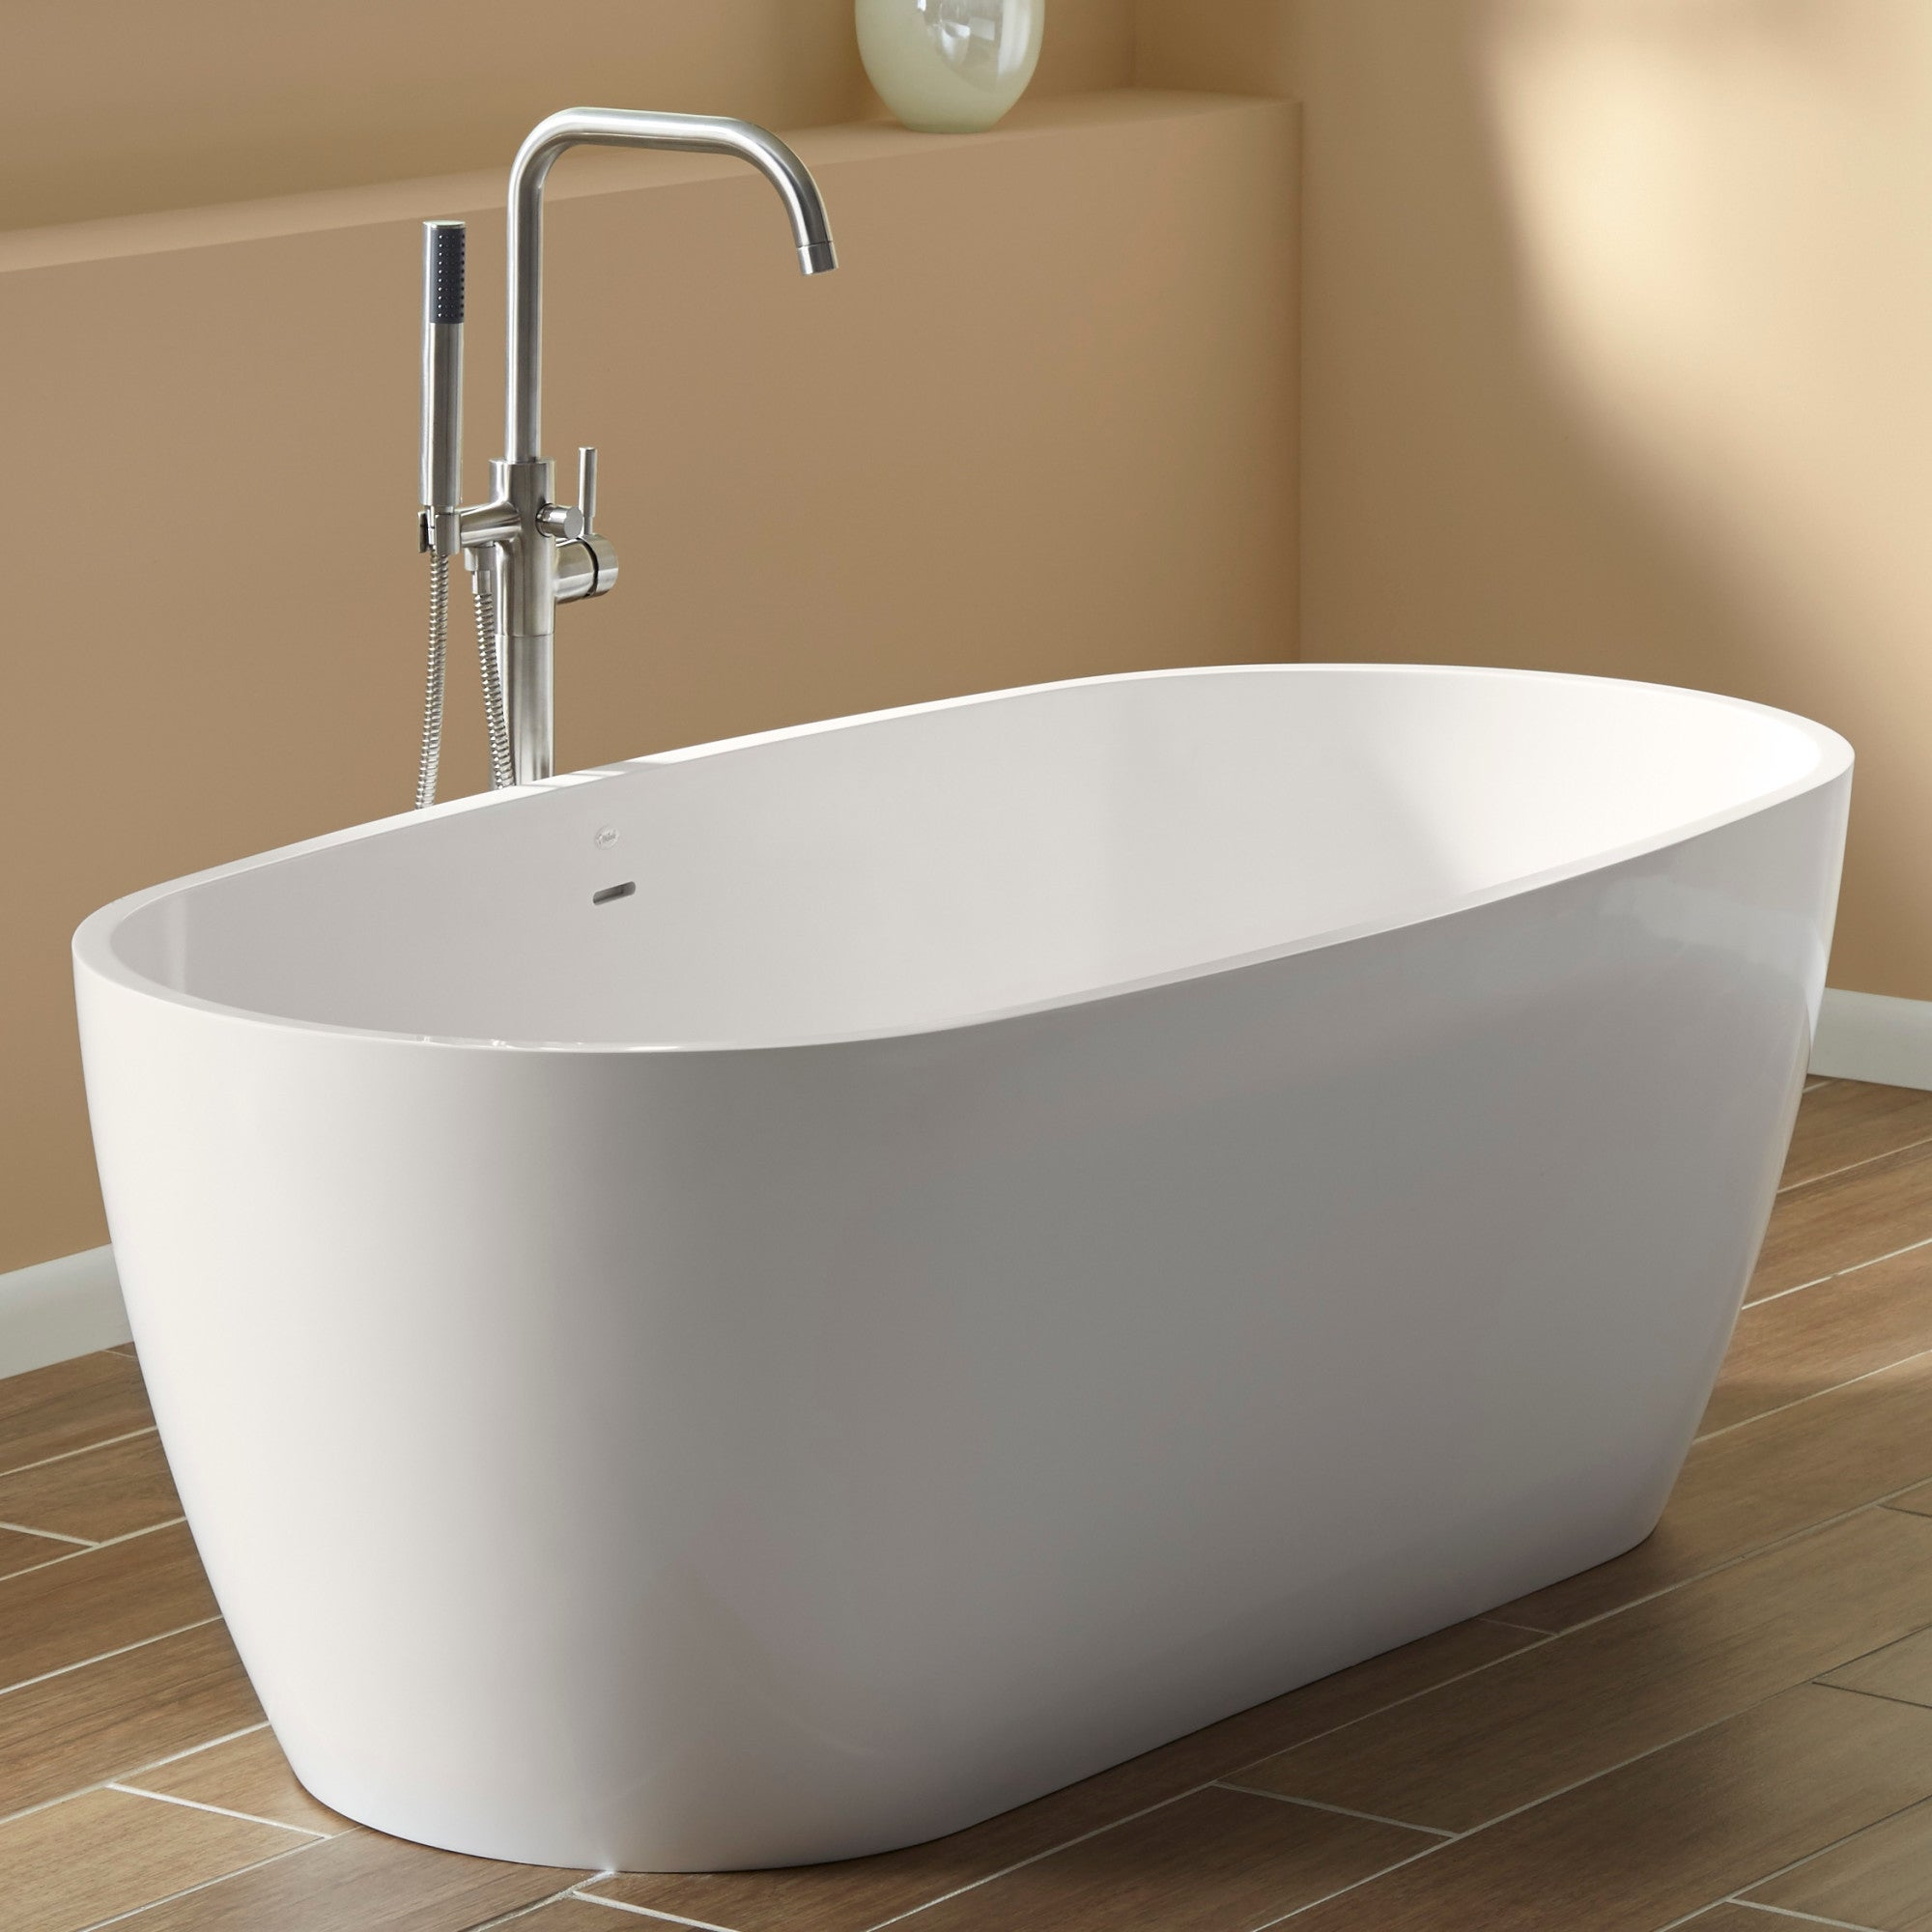 Buy Soaking Tubs Online At Overstock Our Best Bathtubs Deals